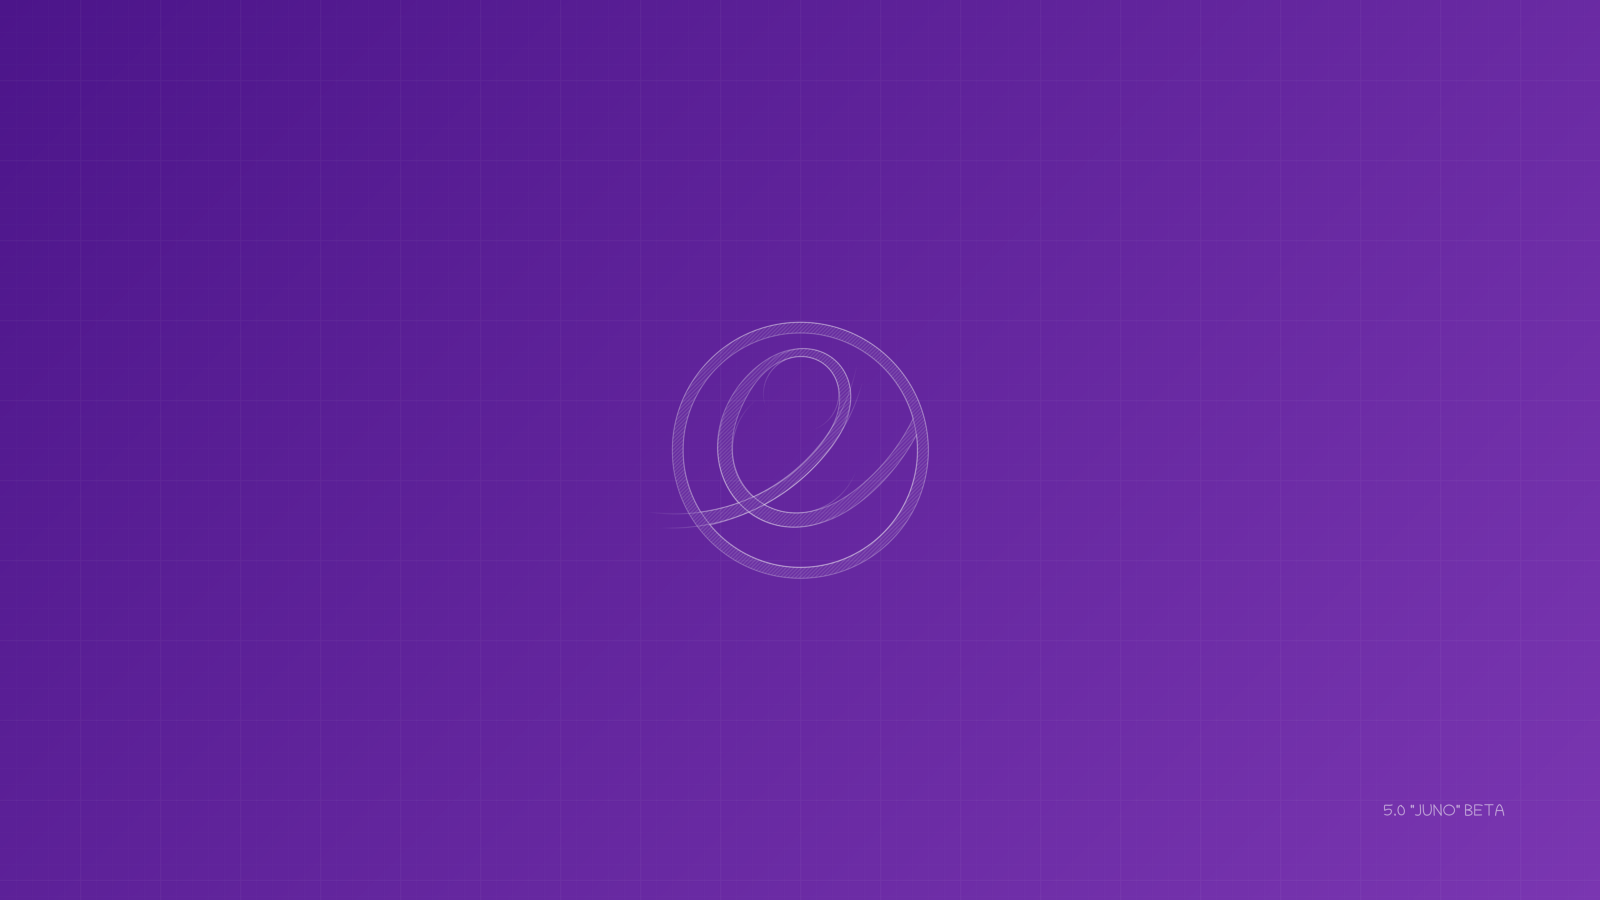 Best Wallpaper Aesthetic Purple - 1*3LntsuEwEpnRVkNf5xe46A  Pictures_418851      .png